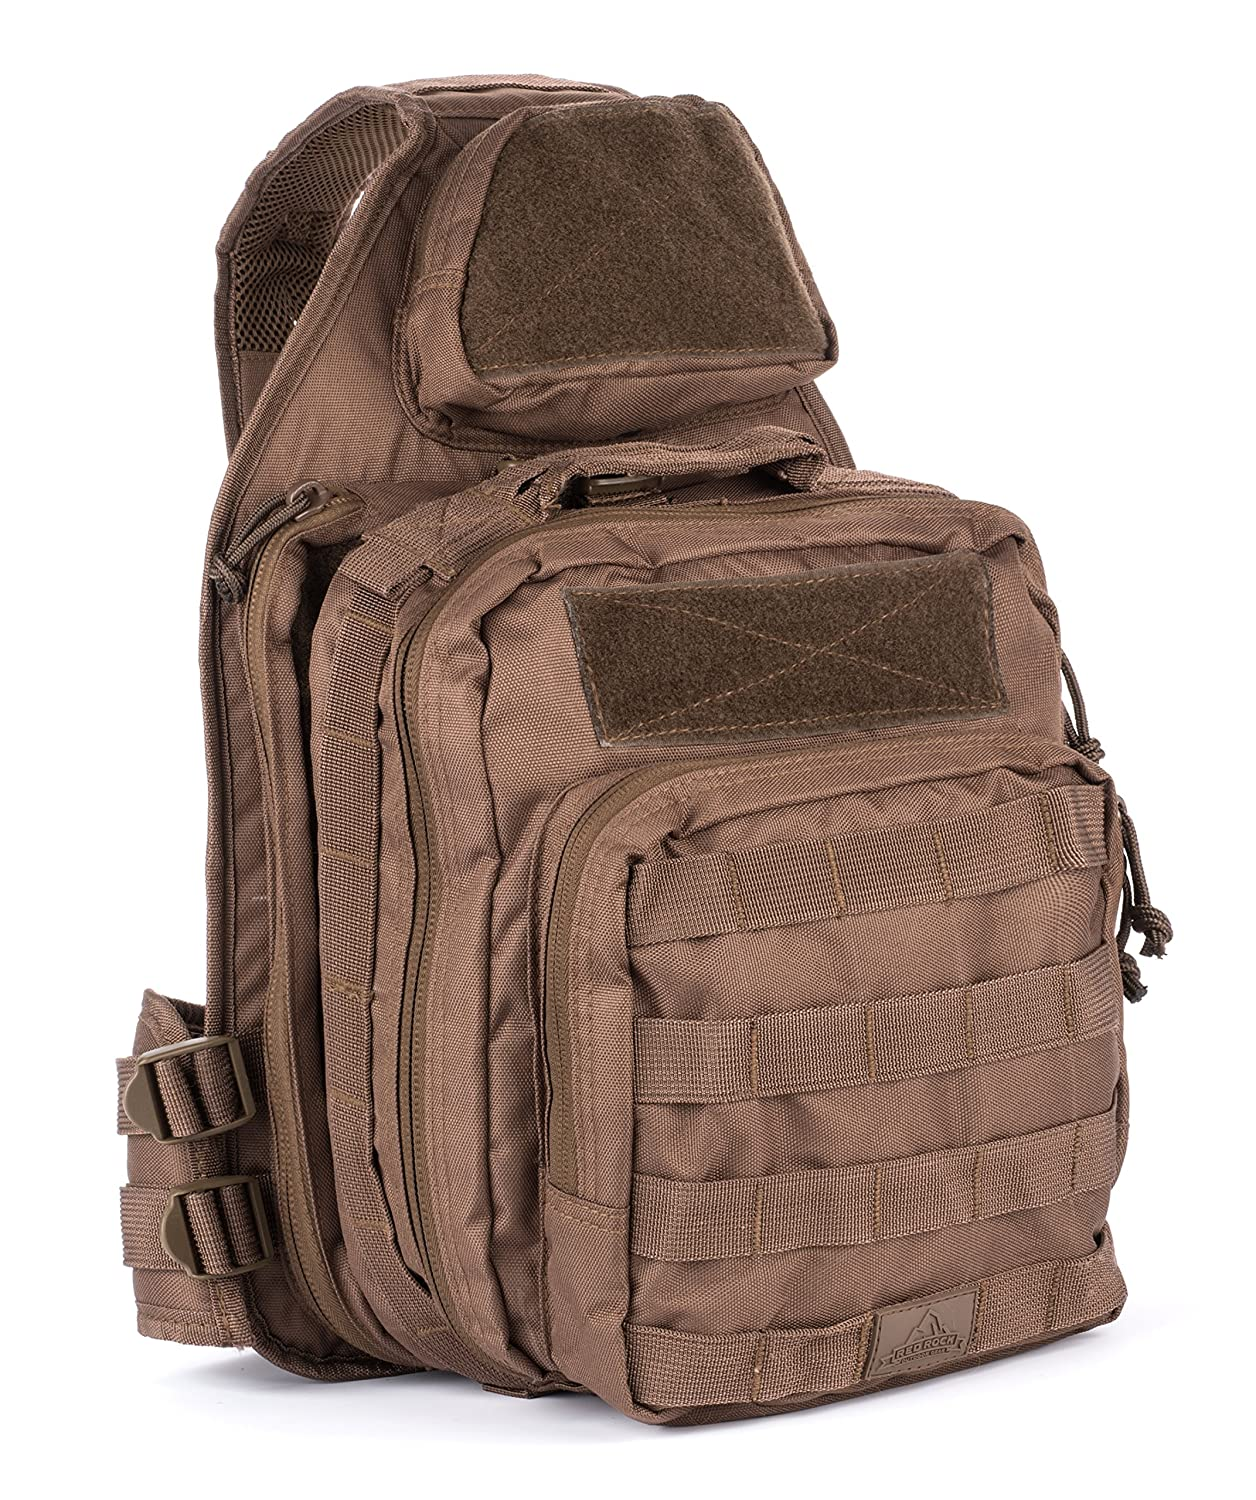 Red Rock Outdoor Gear Recon Sling Pack rock